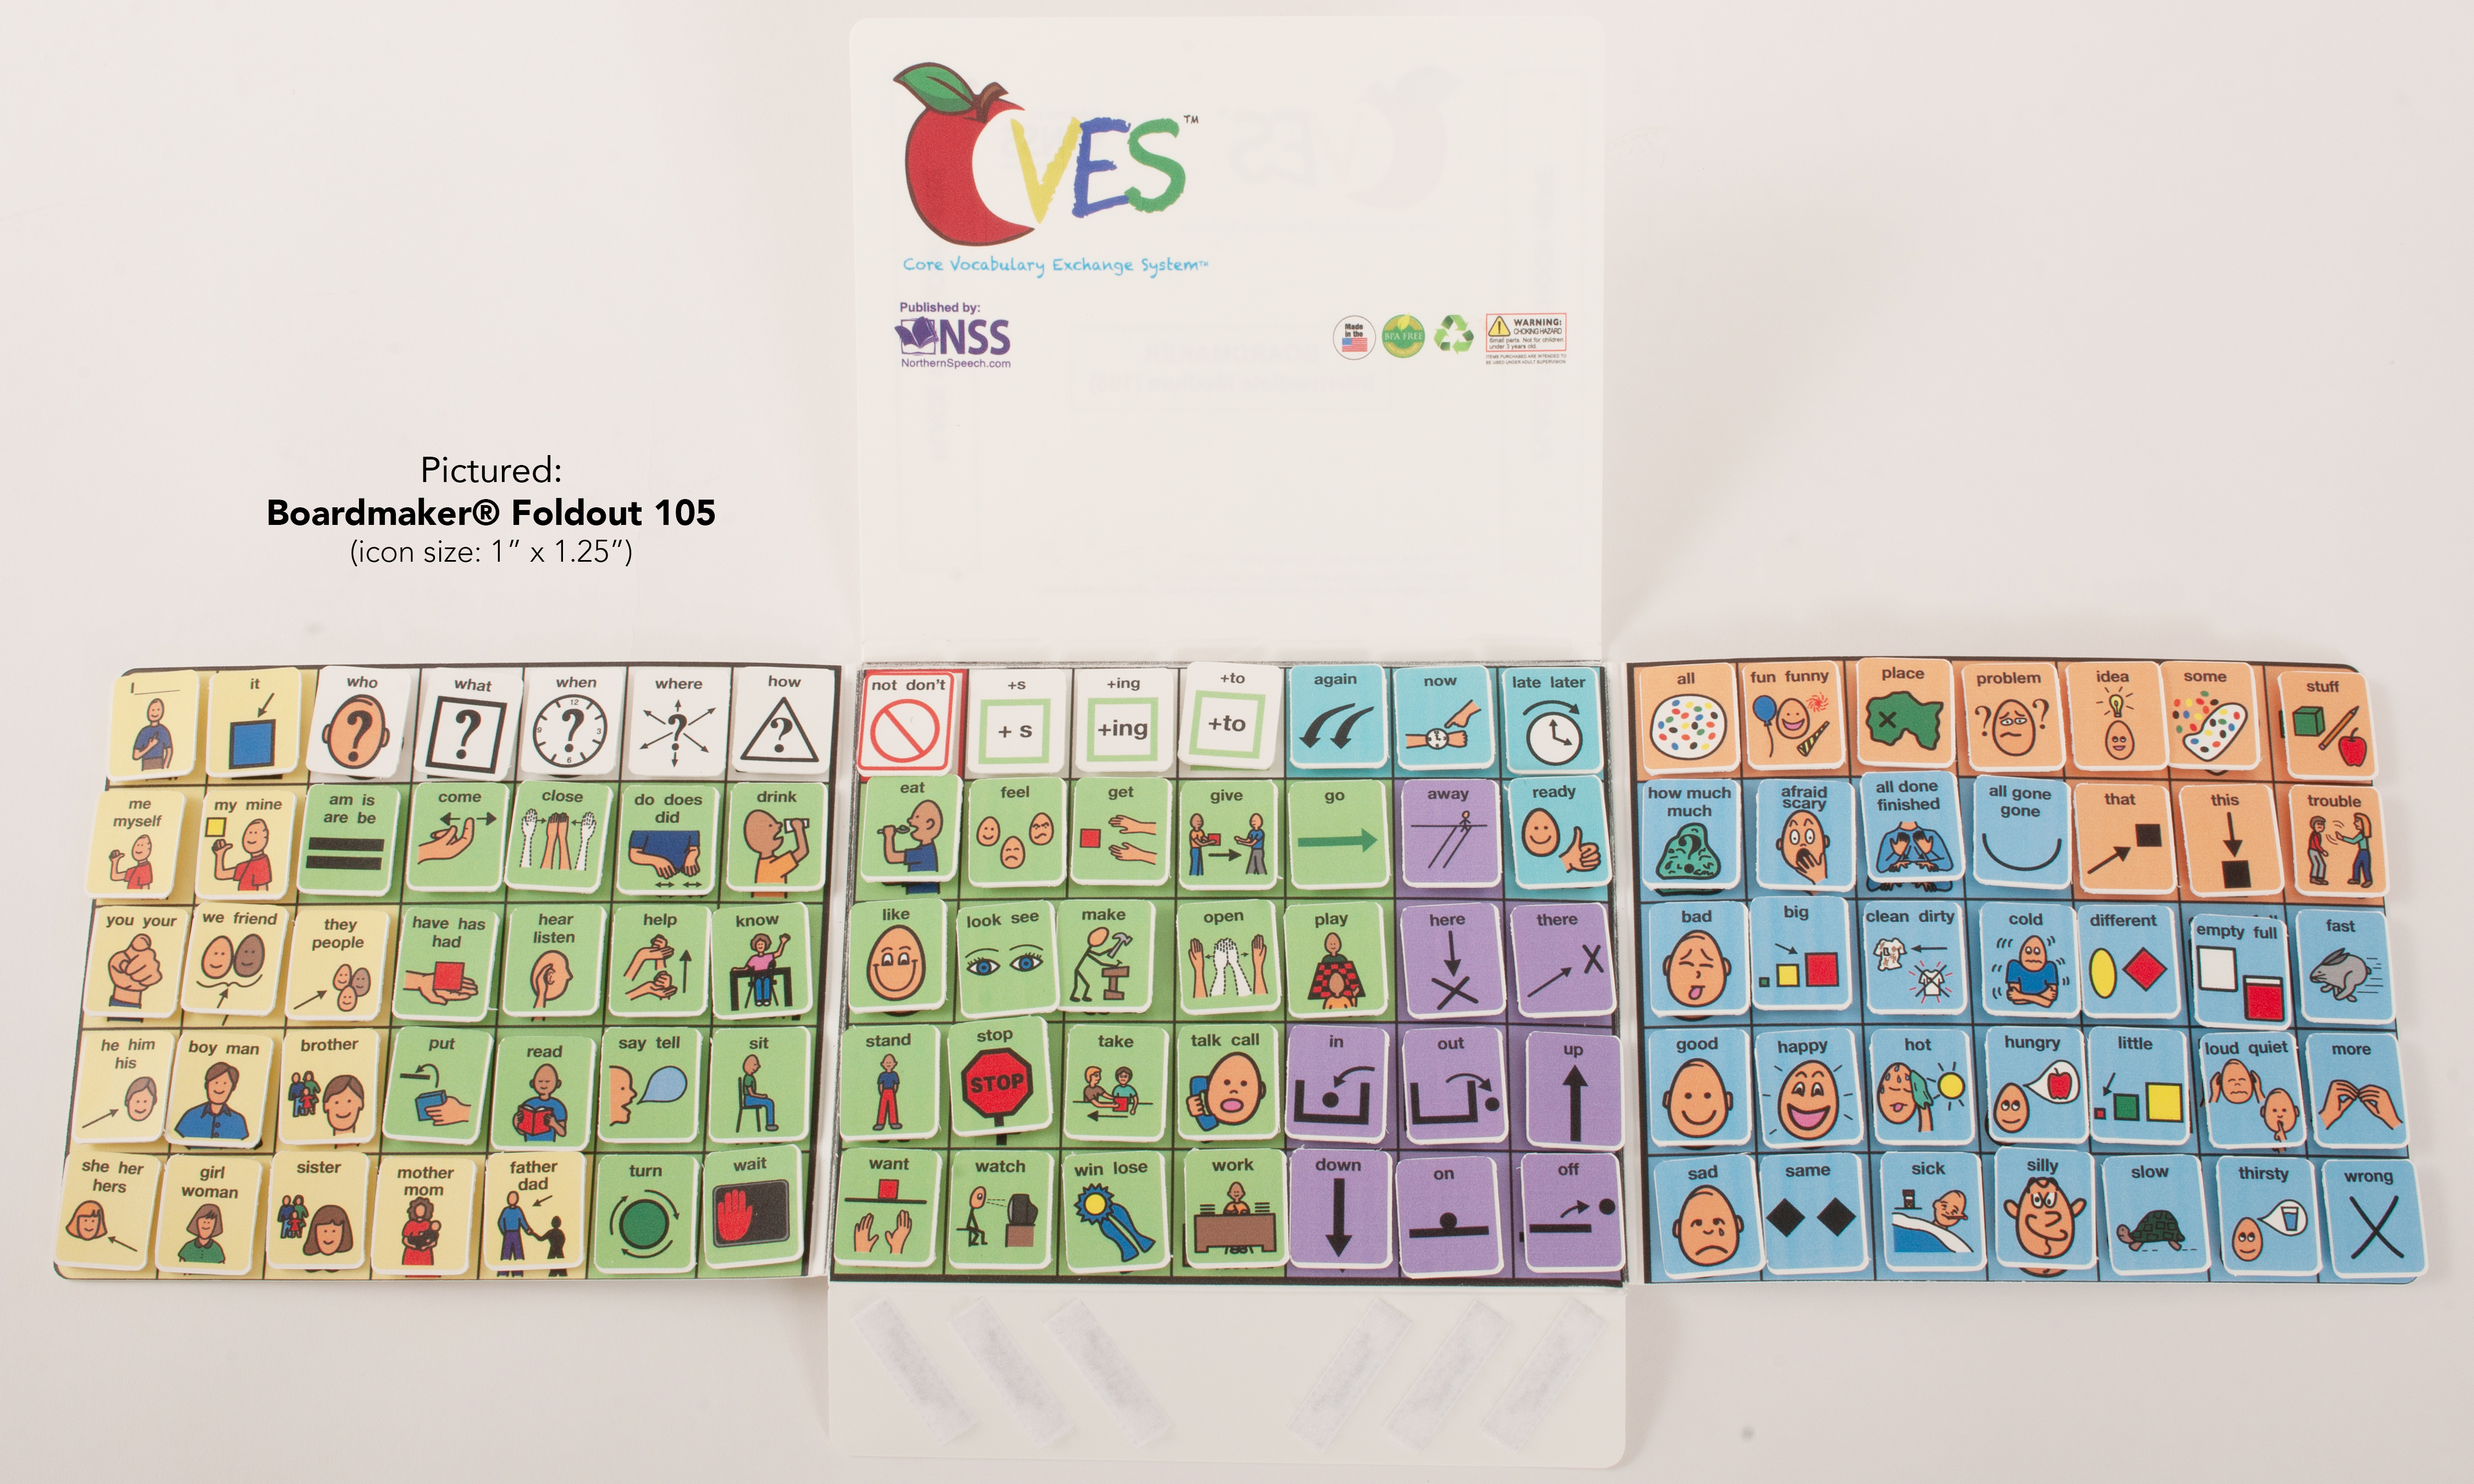 Cves Low Tech Aac Core Vocabulary Exchange System